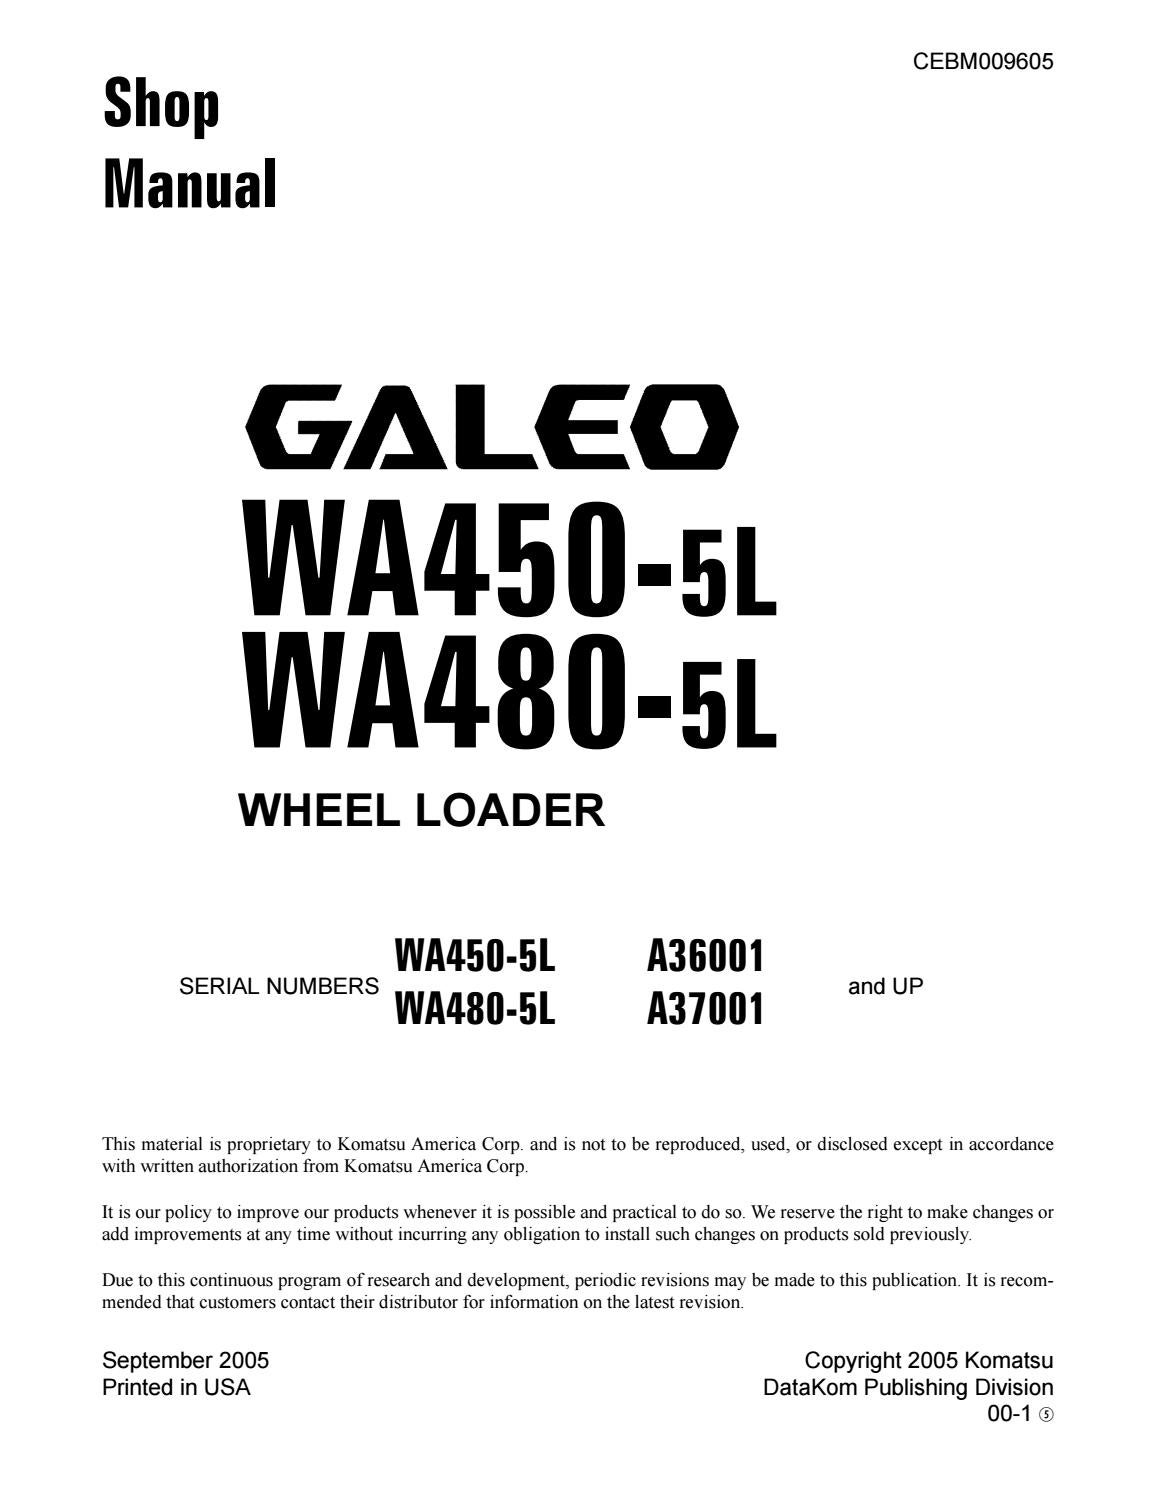 Komatsu WA450-5L Galeo Wheel Loader Service Repair Manual SN?A36001 and up  by 163101 - issuu